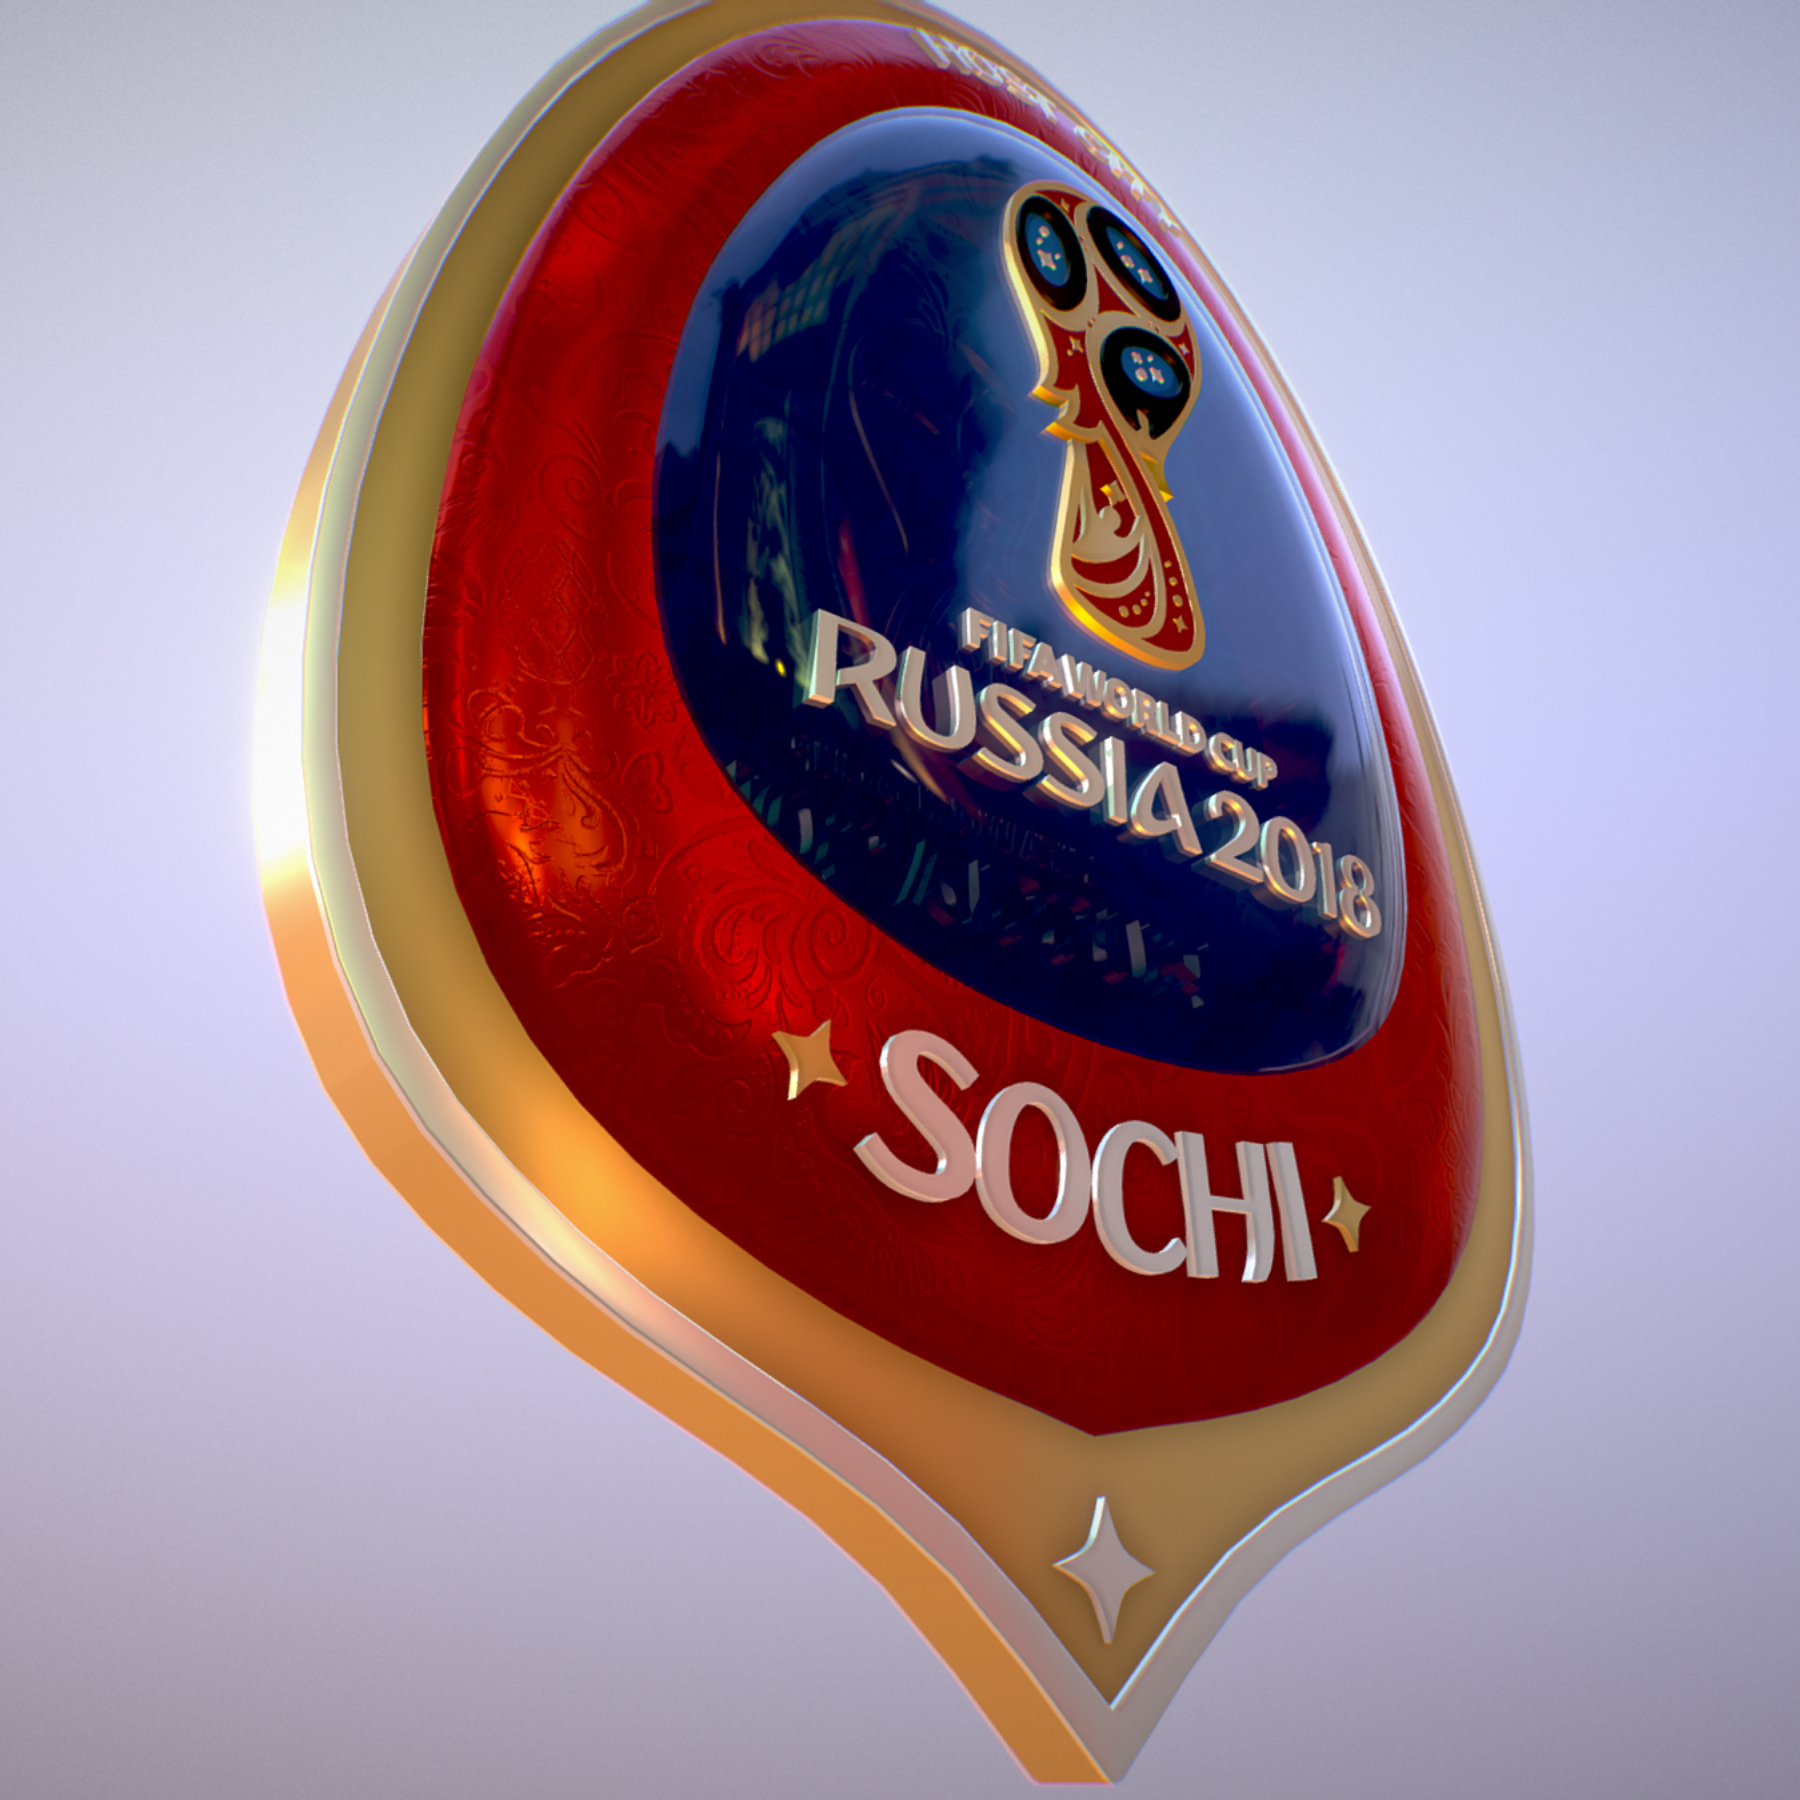 sochi host city world cup russia 2018 symbol 3d model max  fbx ma mb obj 271714